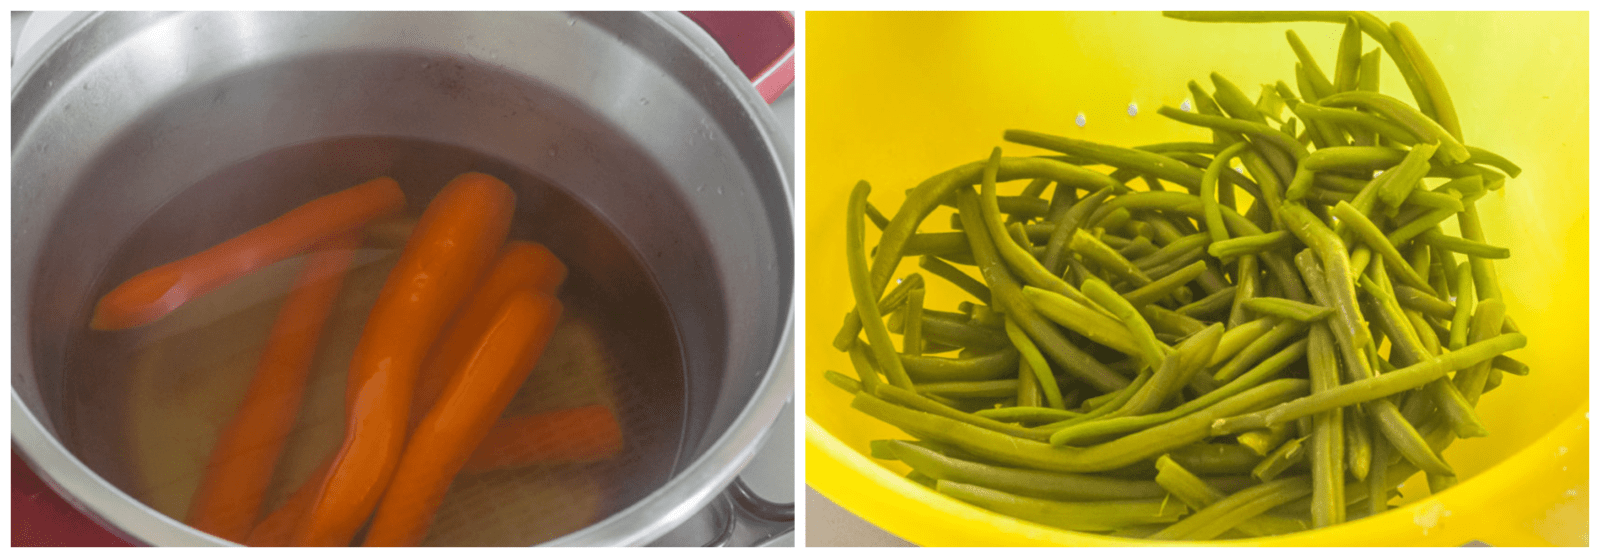 washing and cleaning carrots and beans